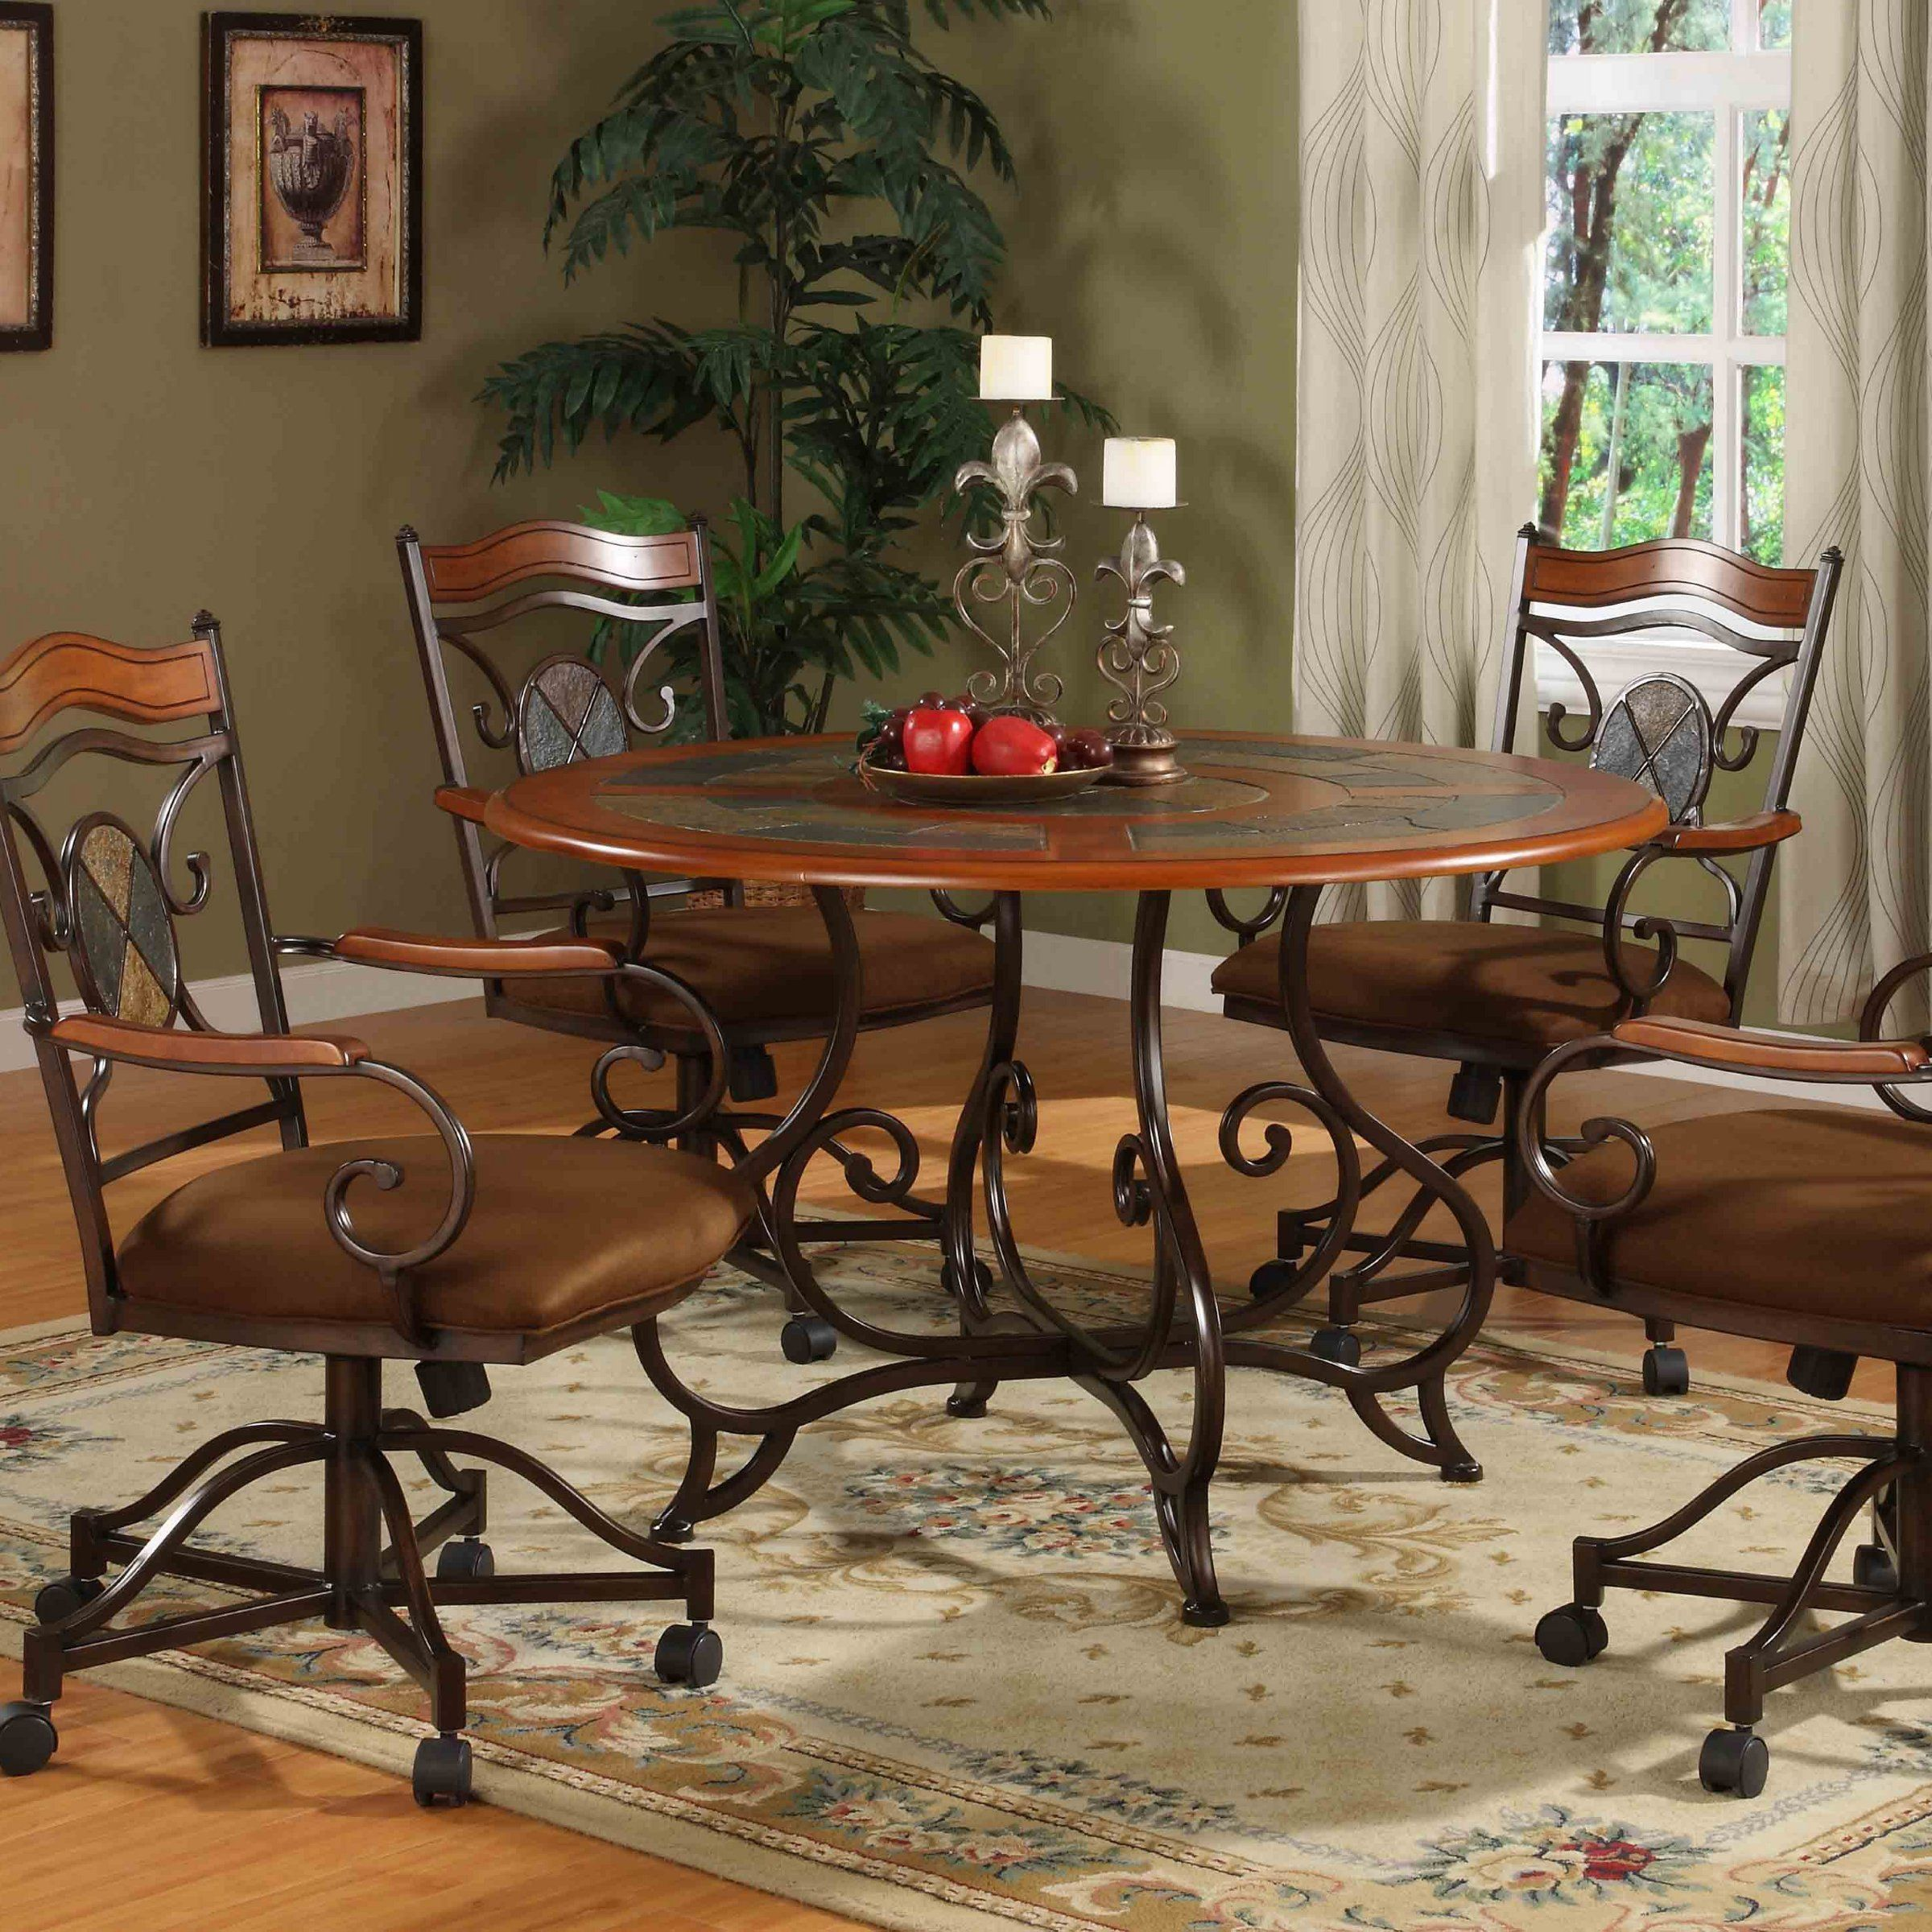 lauderhill 5 piece caster dining set with slate insets kitchen